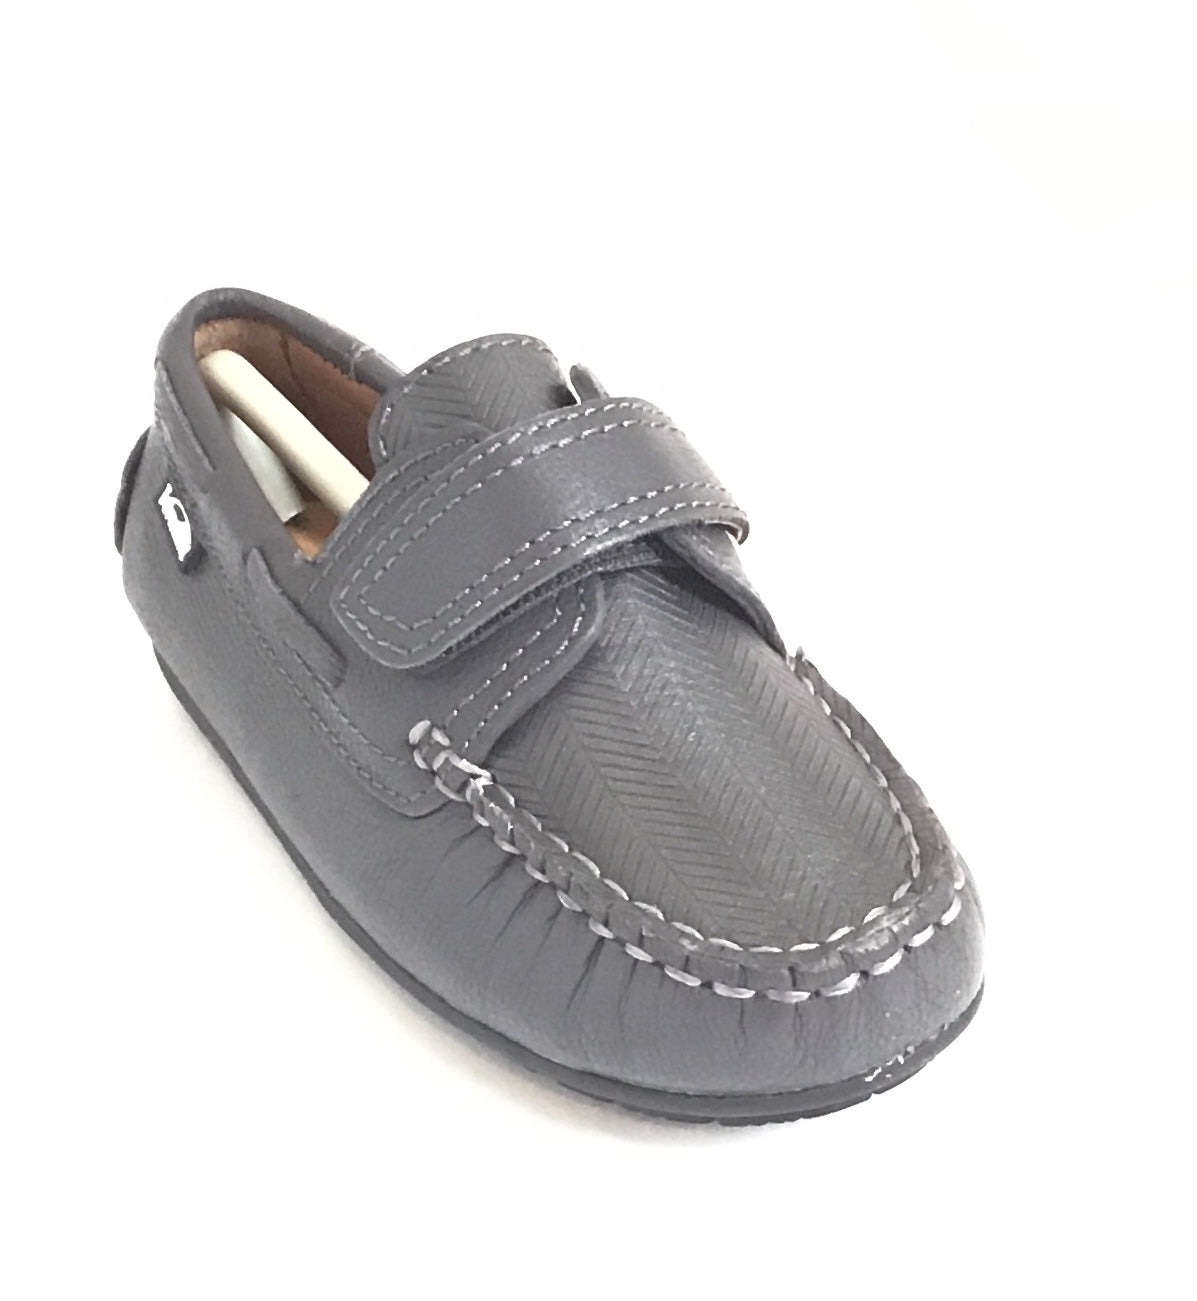 Venettini Gray Velcro Loafer